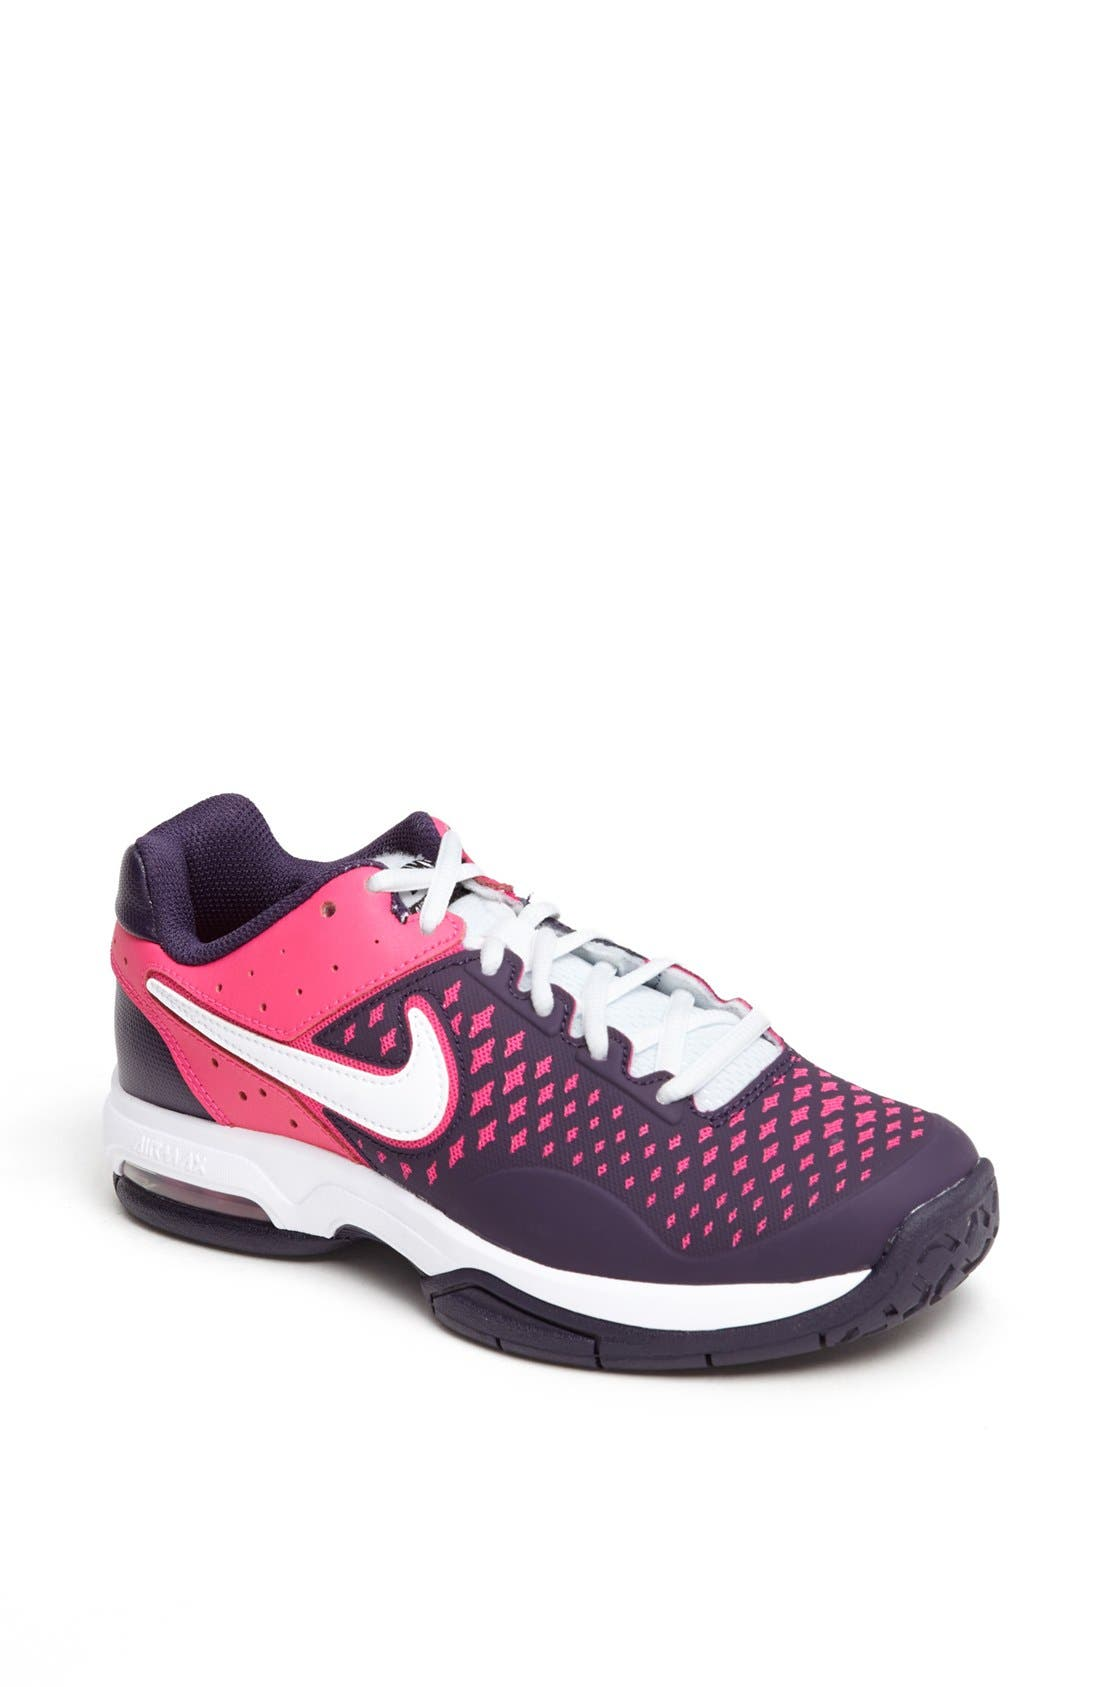 Alternate Image 1 Selected - Nike 'Air Cage Advantage' Tennis Shoe (Women)